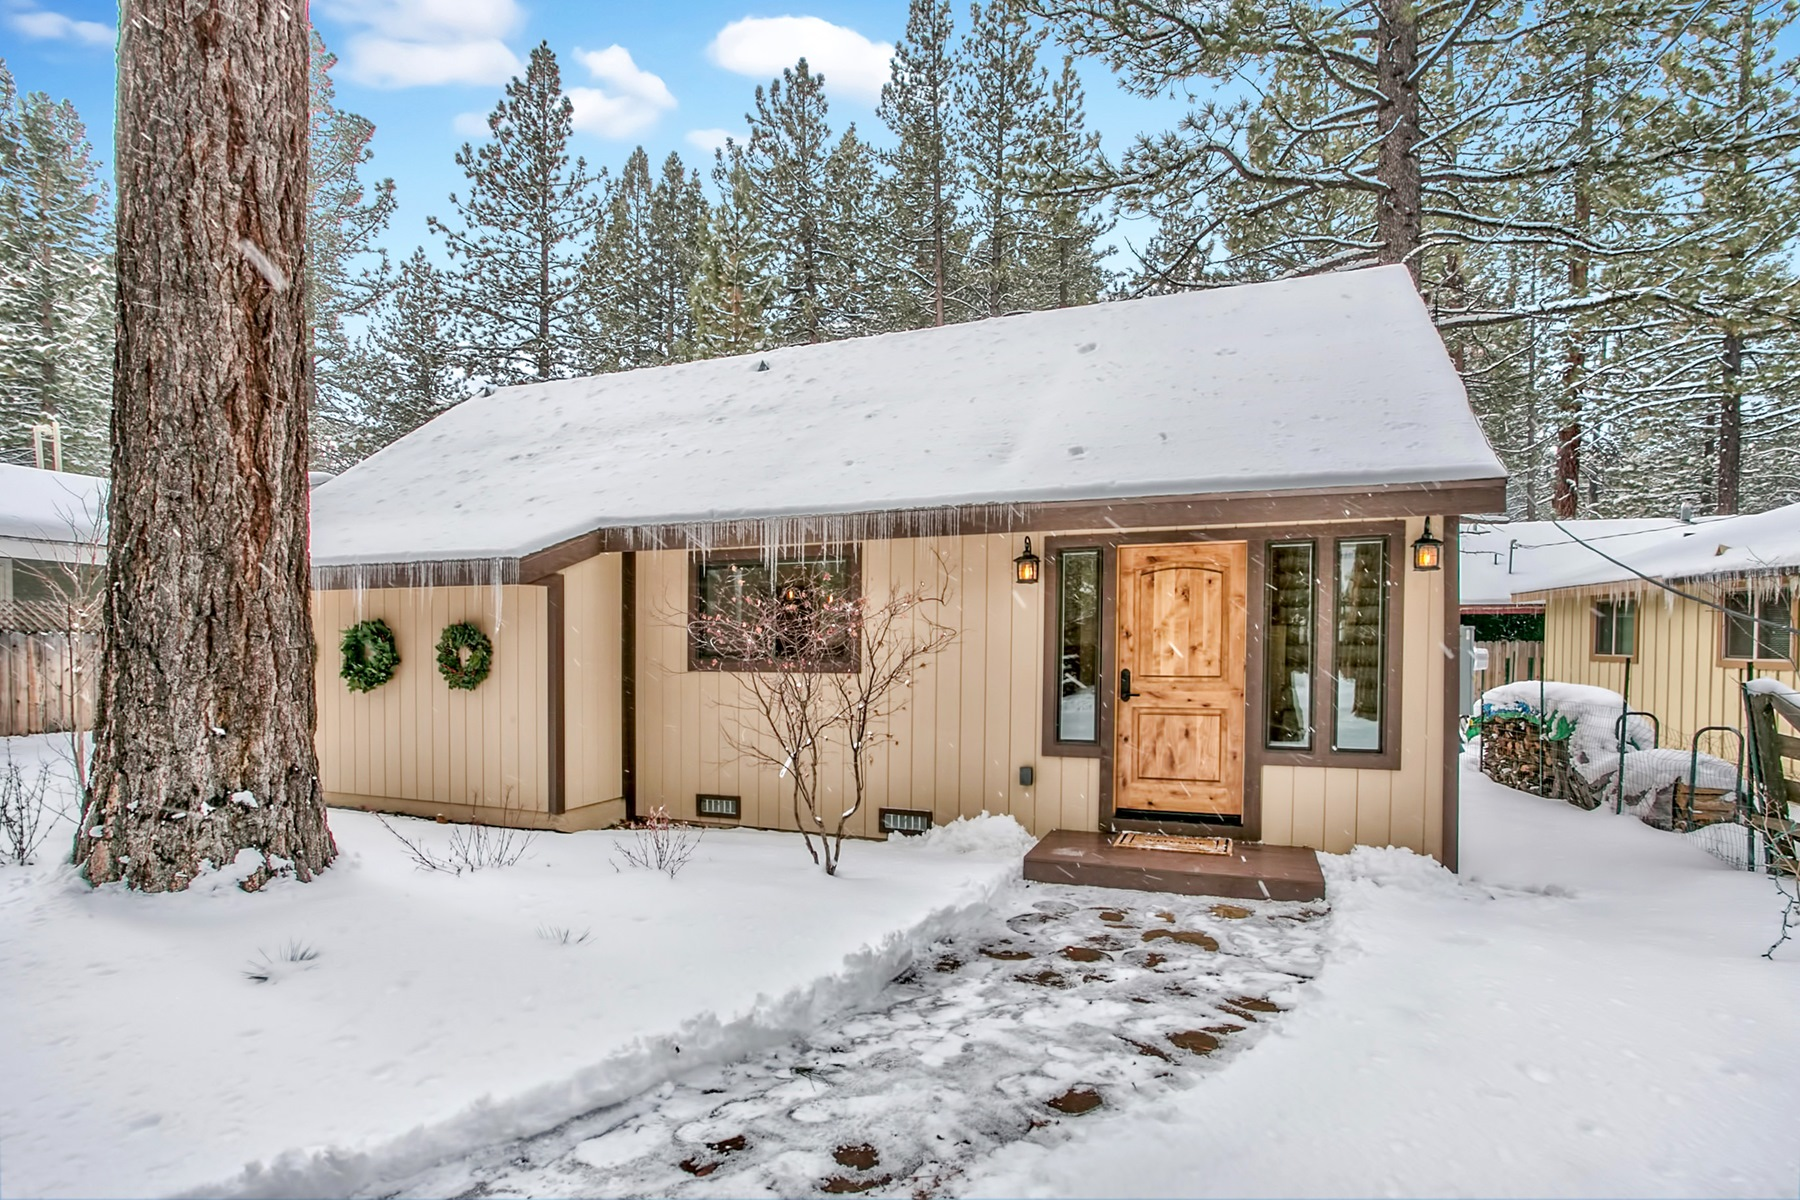 Villa per Vendita alle ore 2943 Oakland Ave. South Lake Tahoe, California, 96150 Stati Uniti